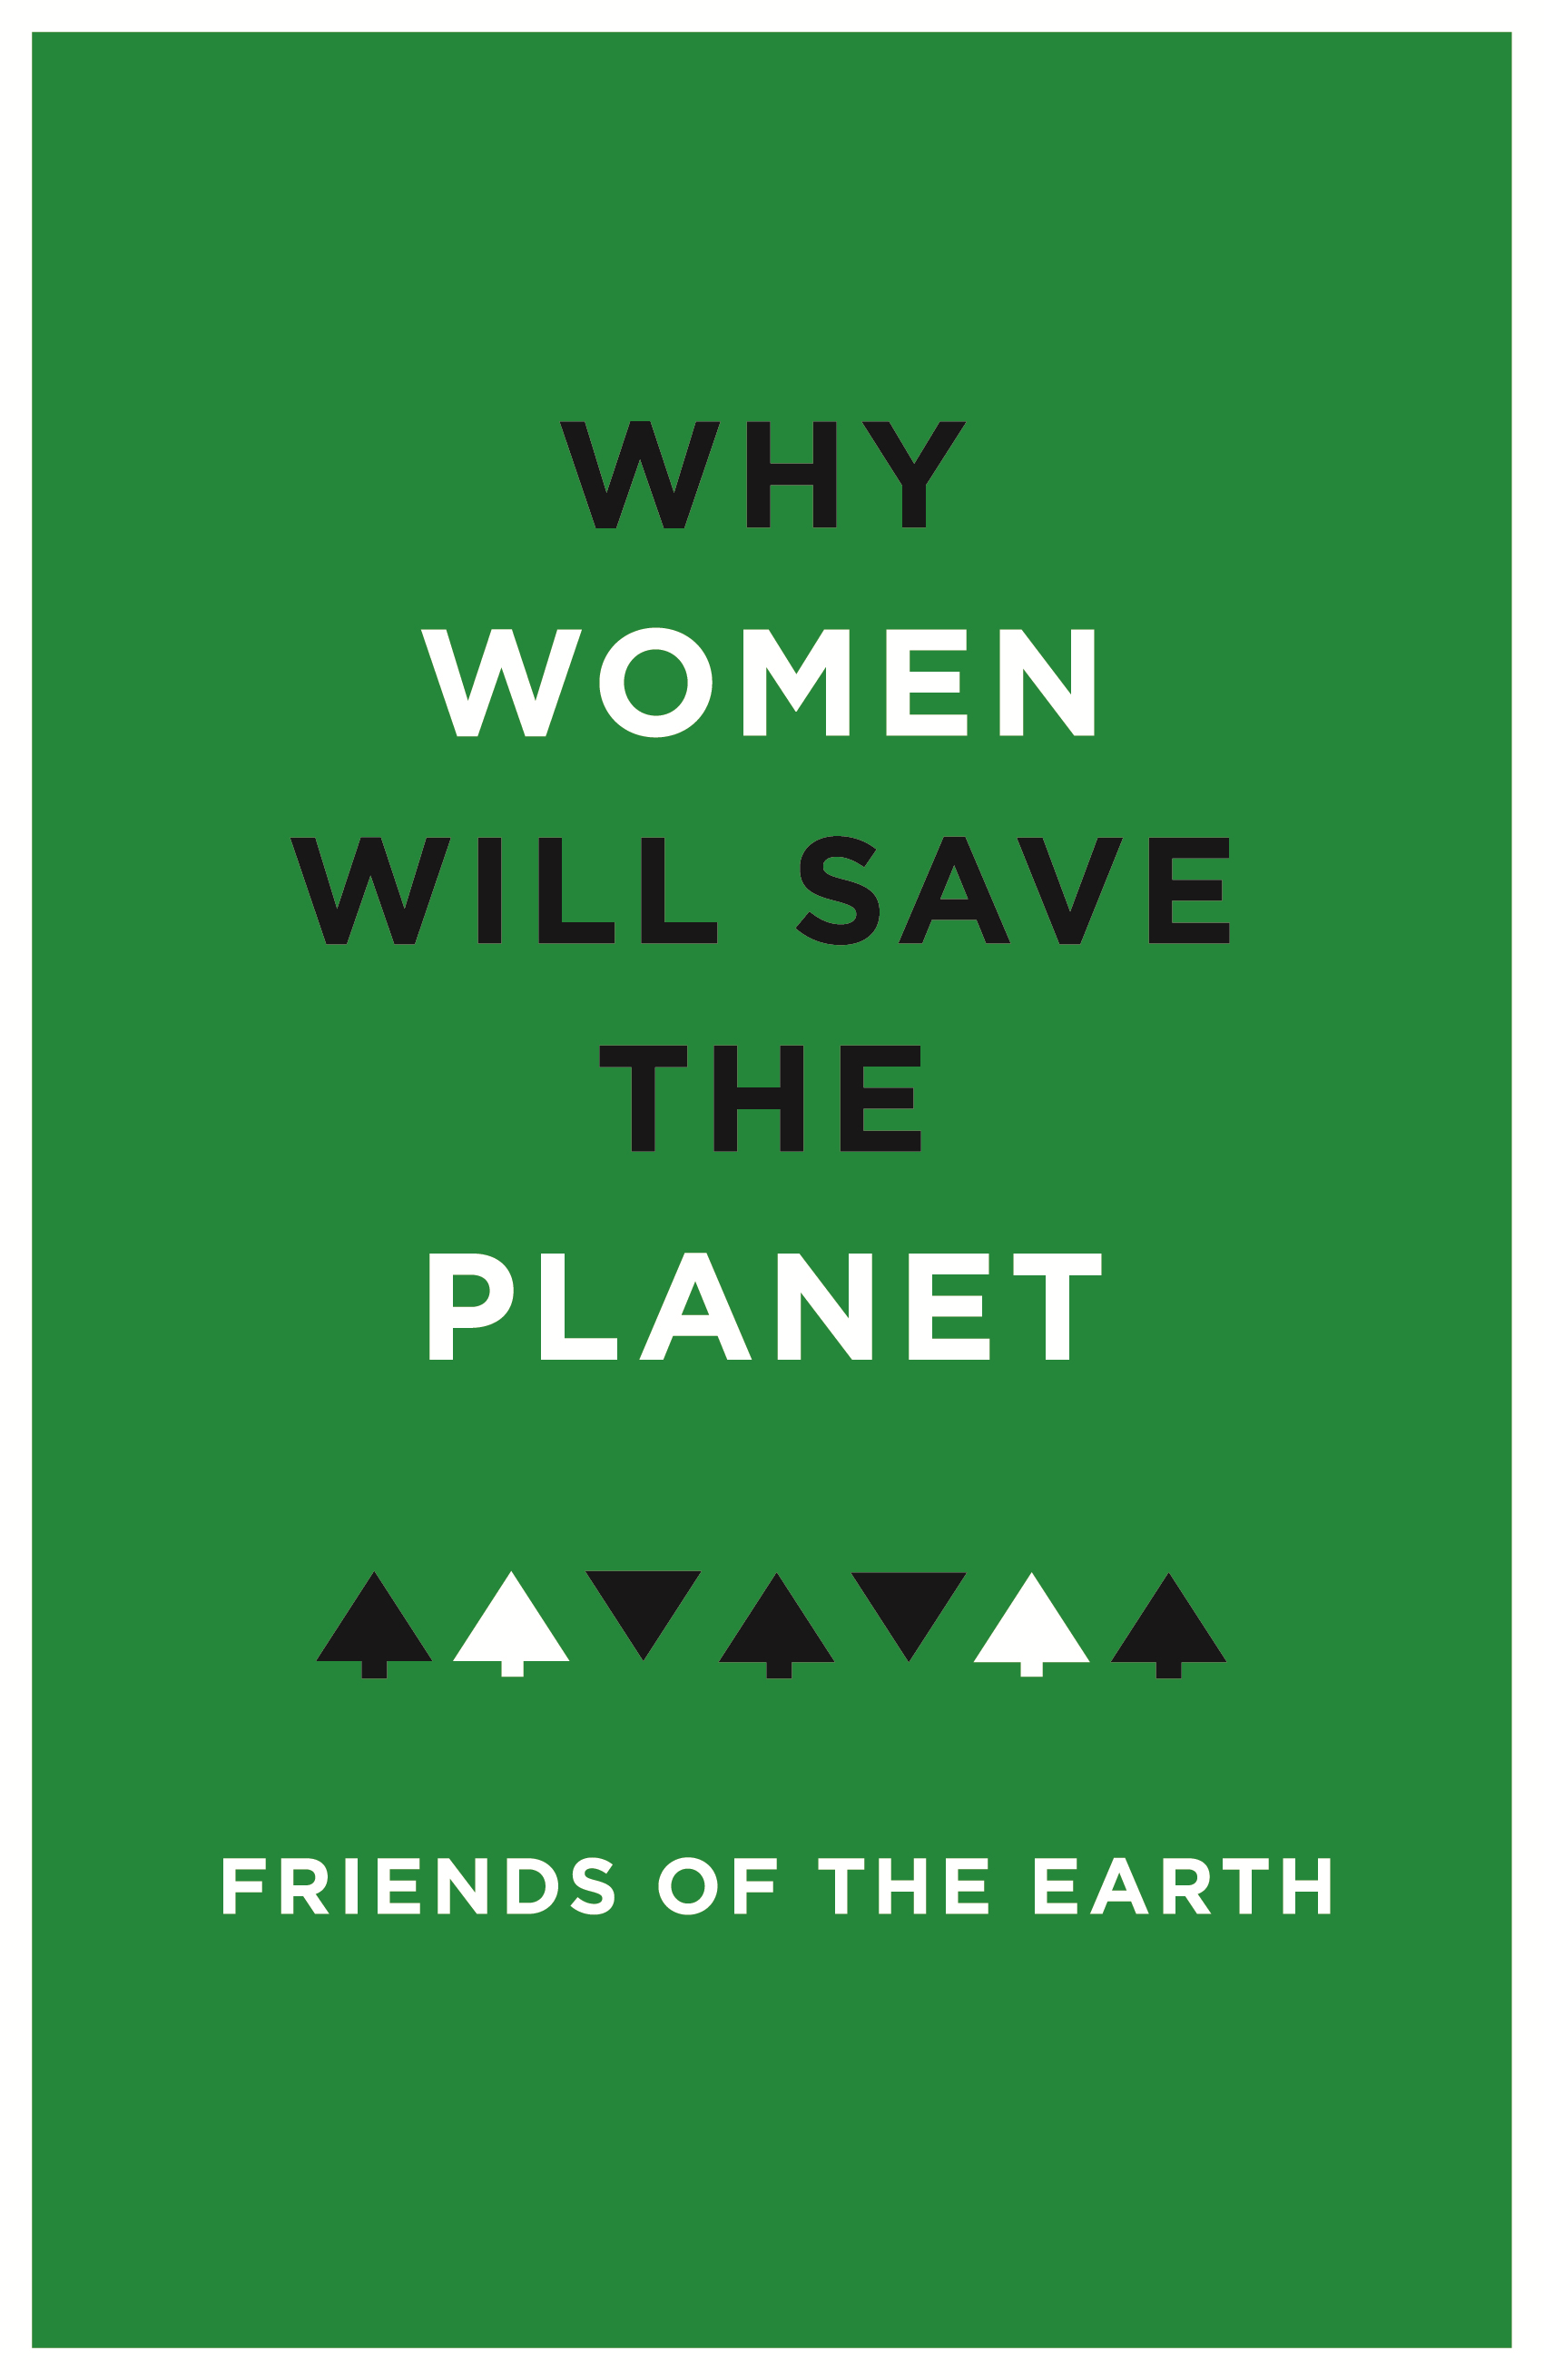 New book by Friends of the Earth to spark debate and action on